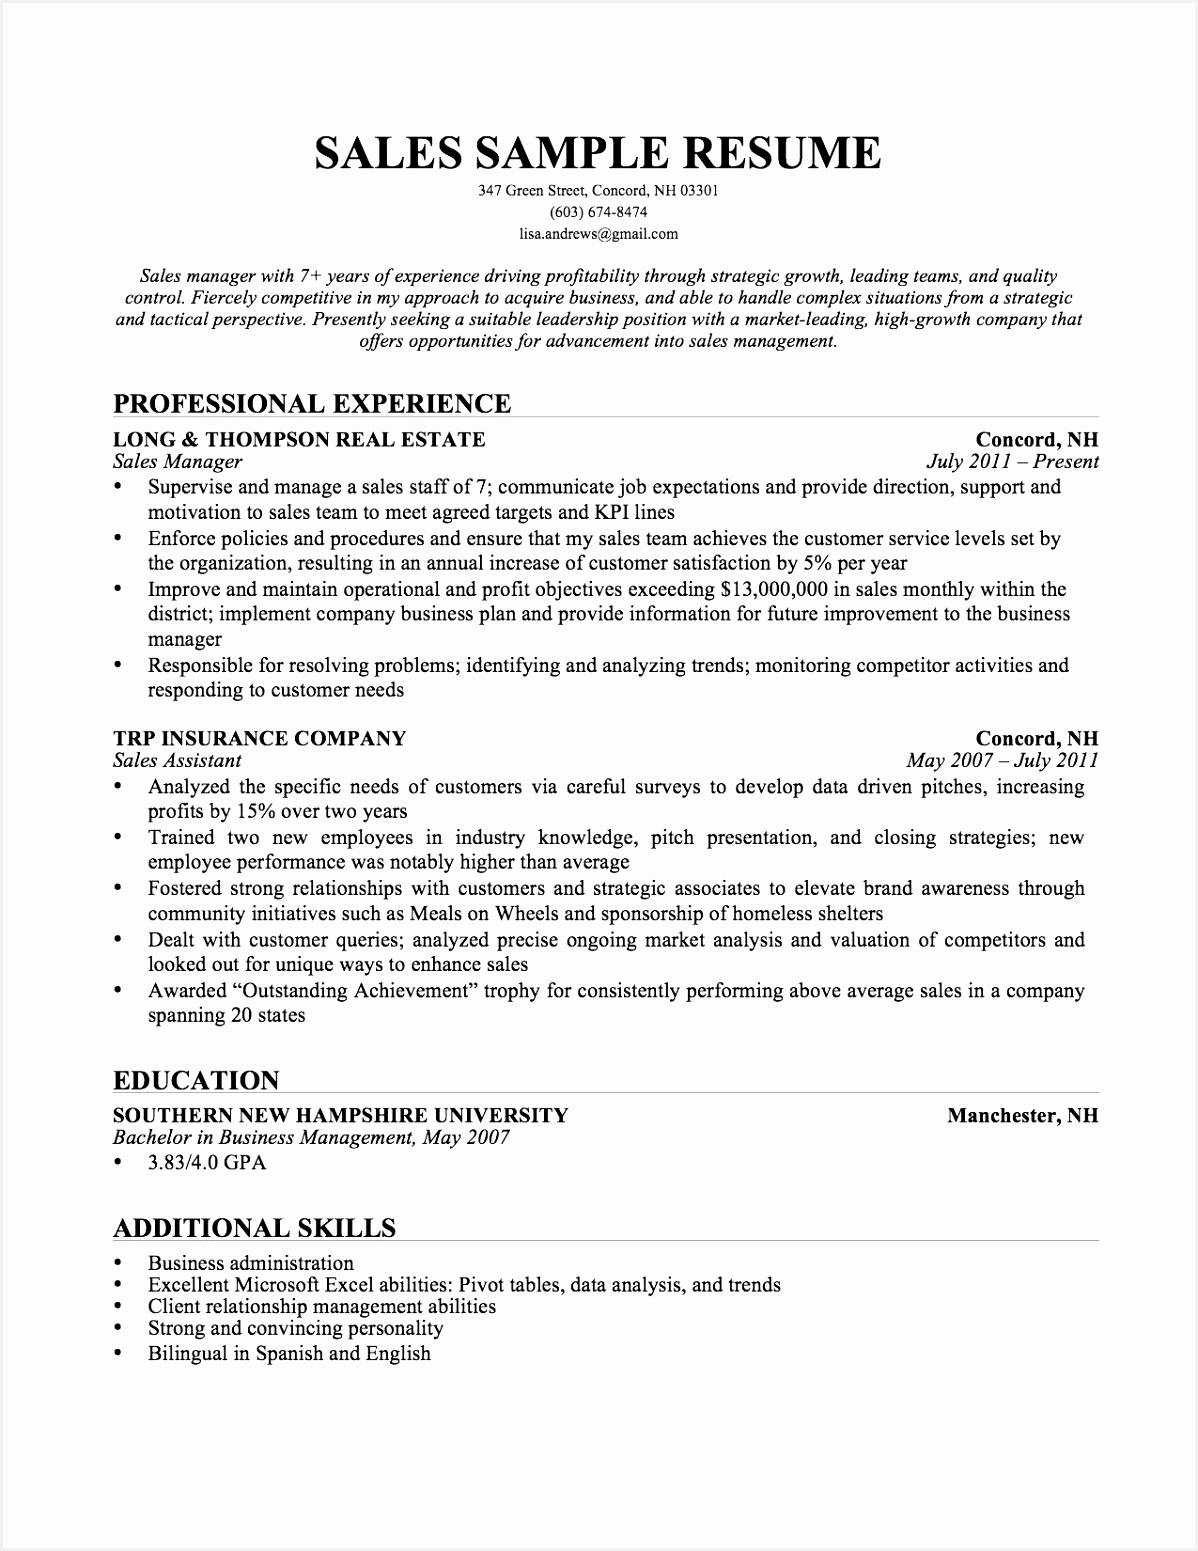 Sample Resume Business Coach Valid Chef Resume Samples Chef Resume Samples Awesome Retail Resume 0d 155111982bIcr